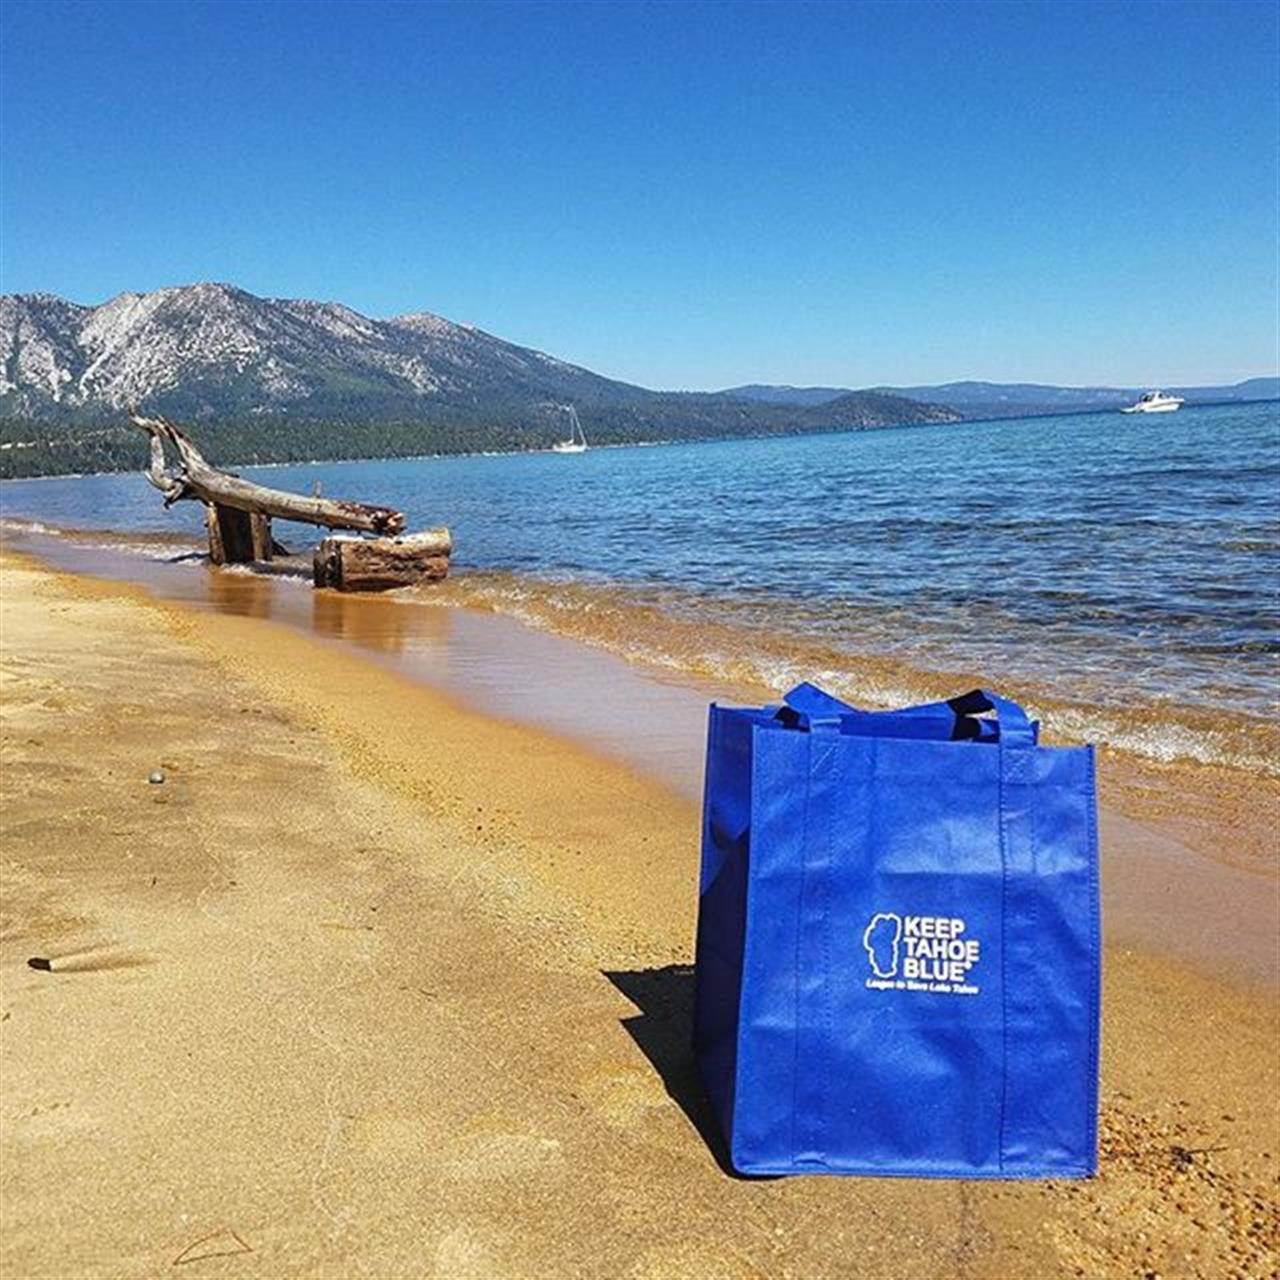 Beach Cleanup! Day After 4th of July and Our Beaches Need Some TLC. #southlaketahoe